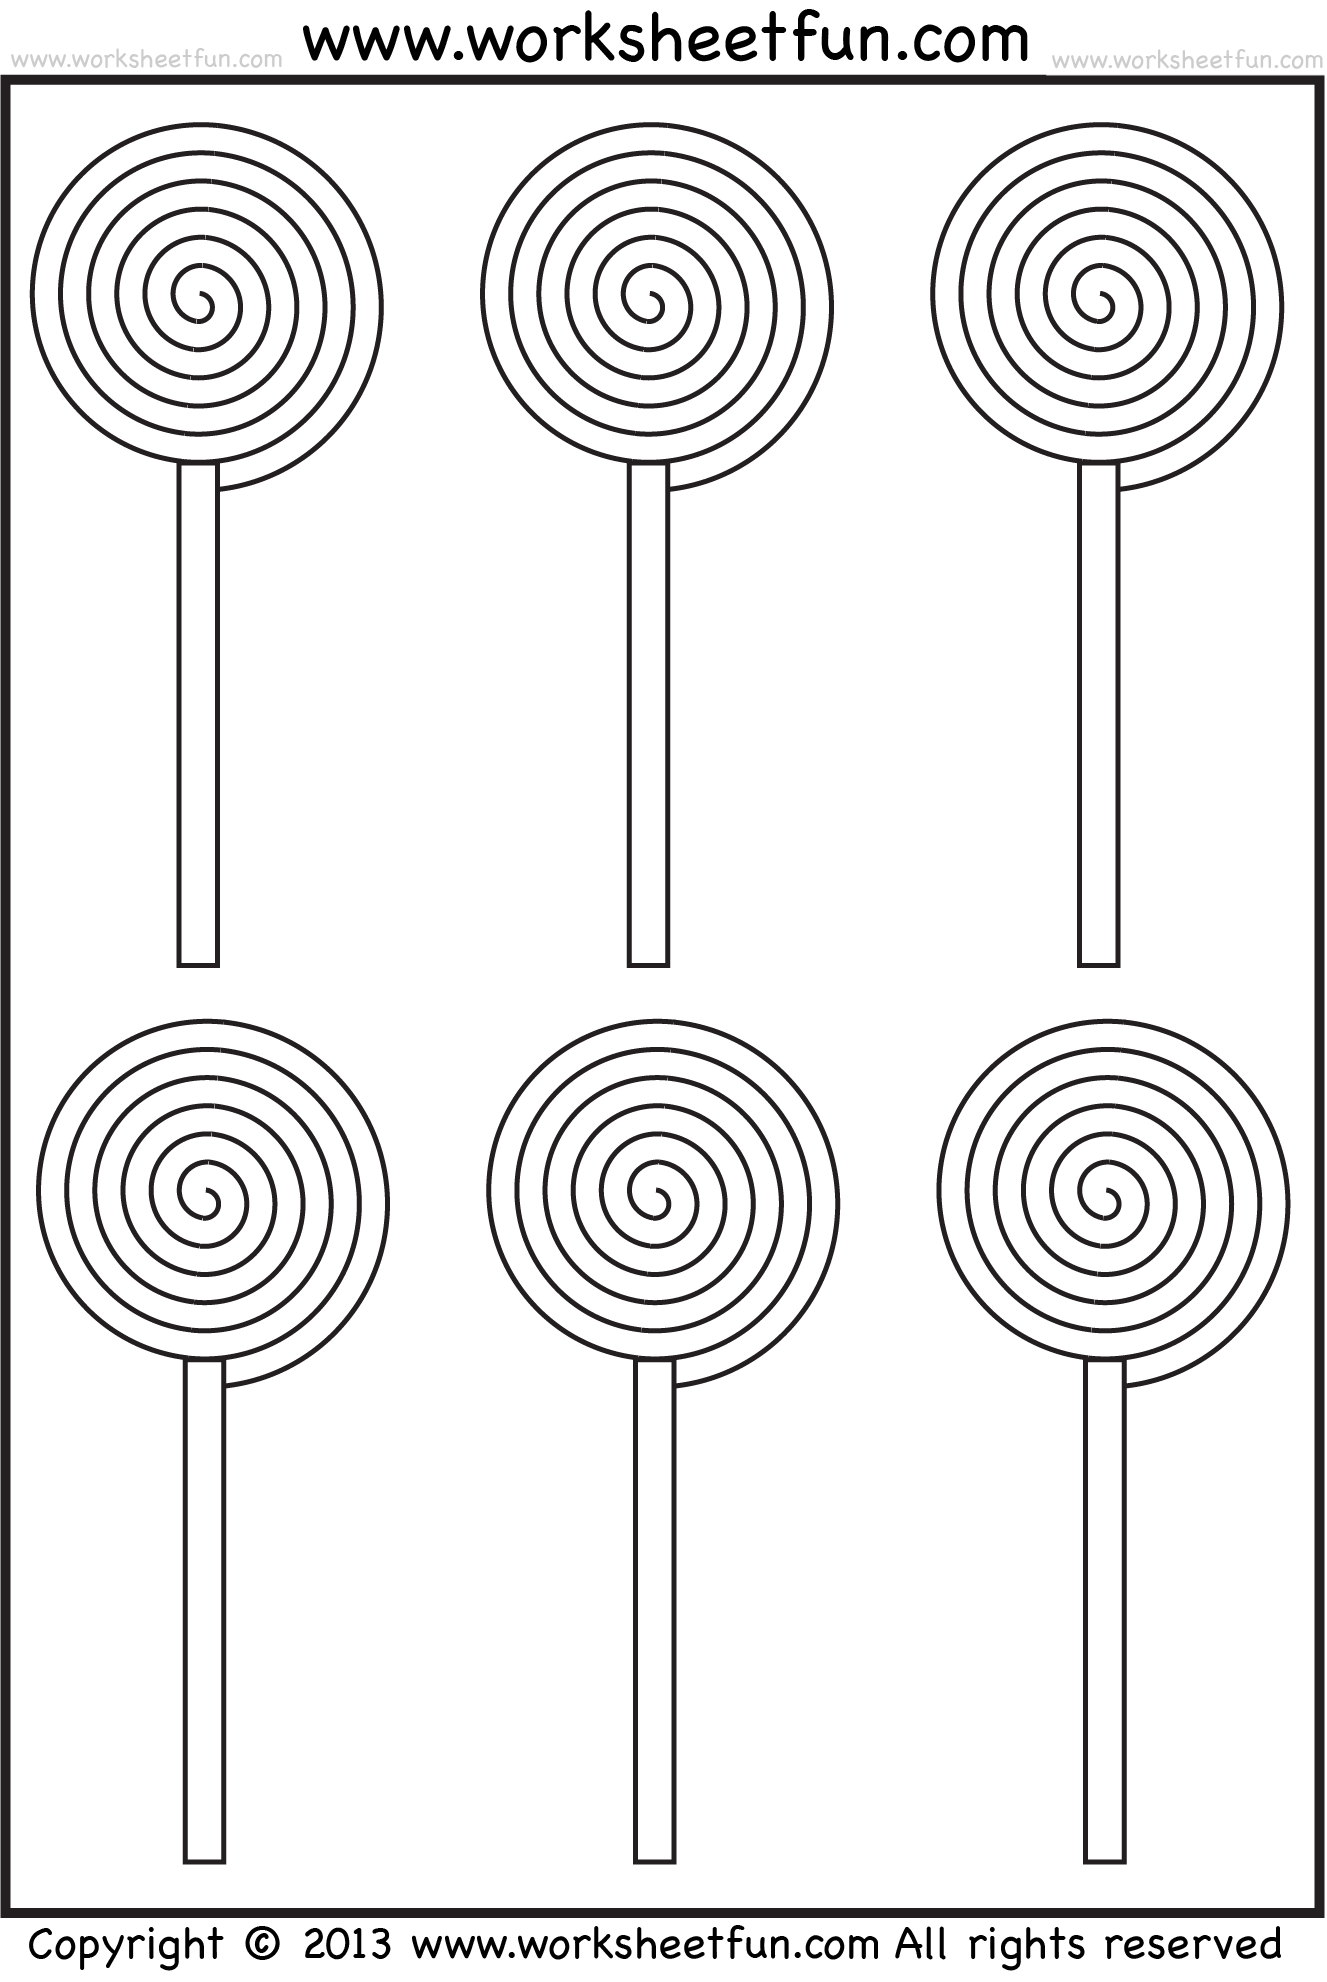 Gardening Worksheet For Preschoolers Patterns